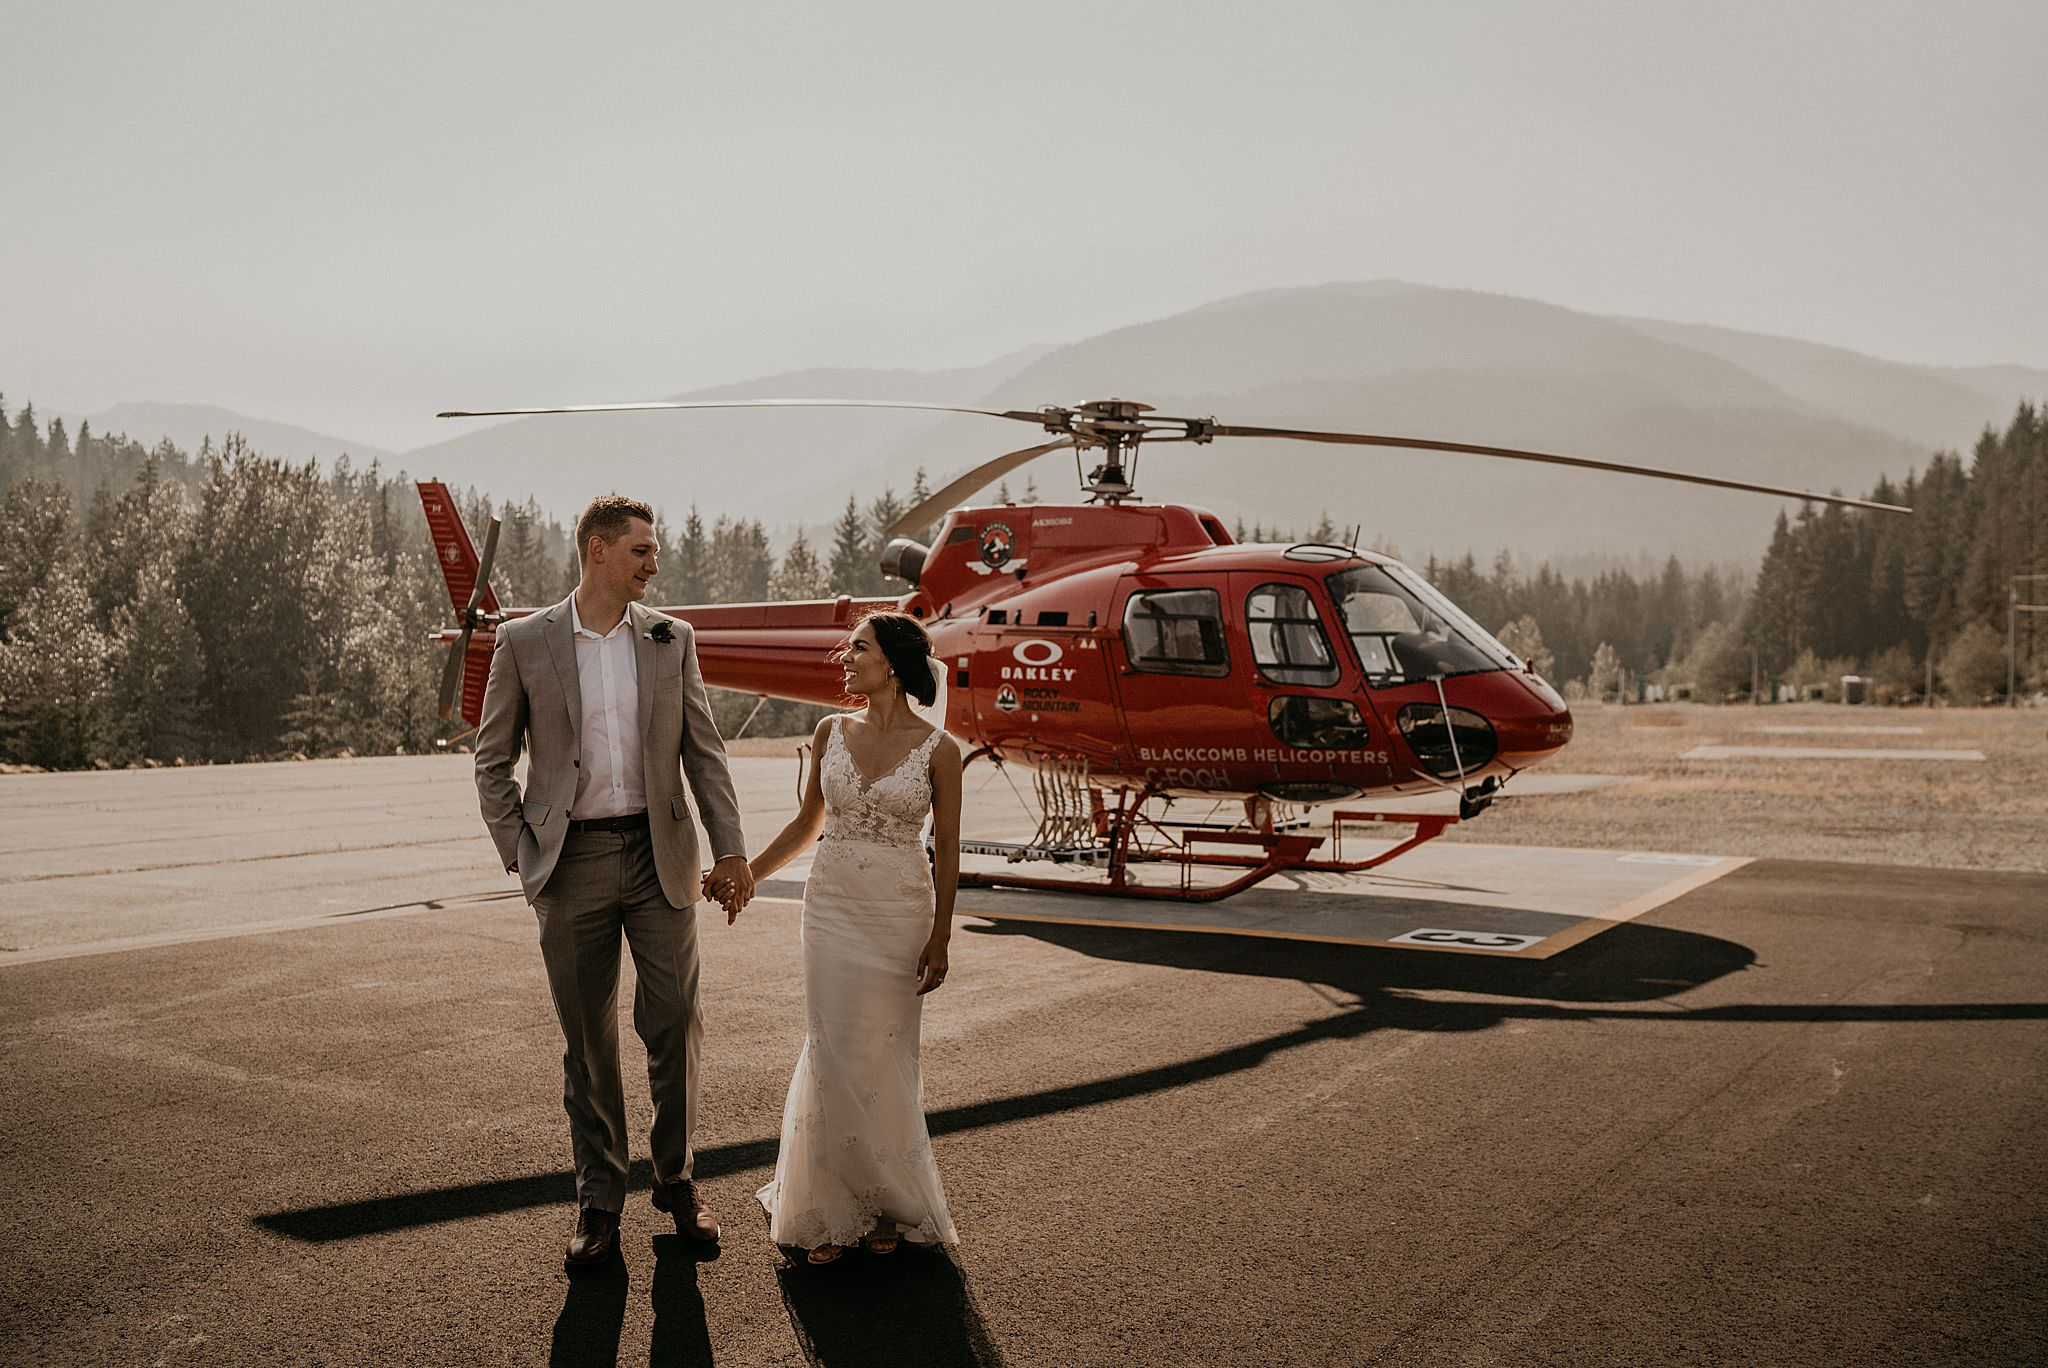 whistler-mountain-helicopter-elopement-wedding_0079.jpg